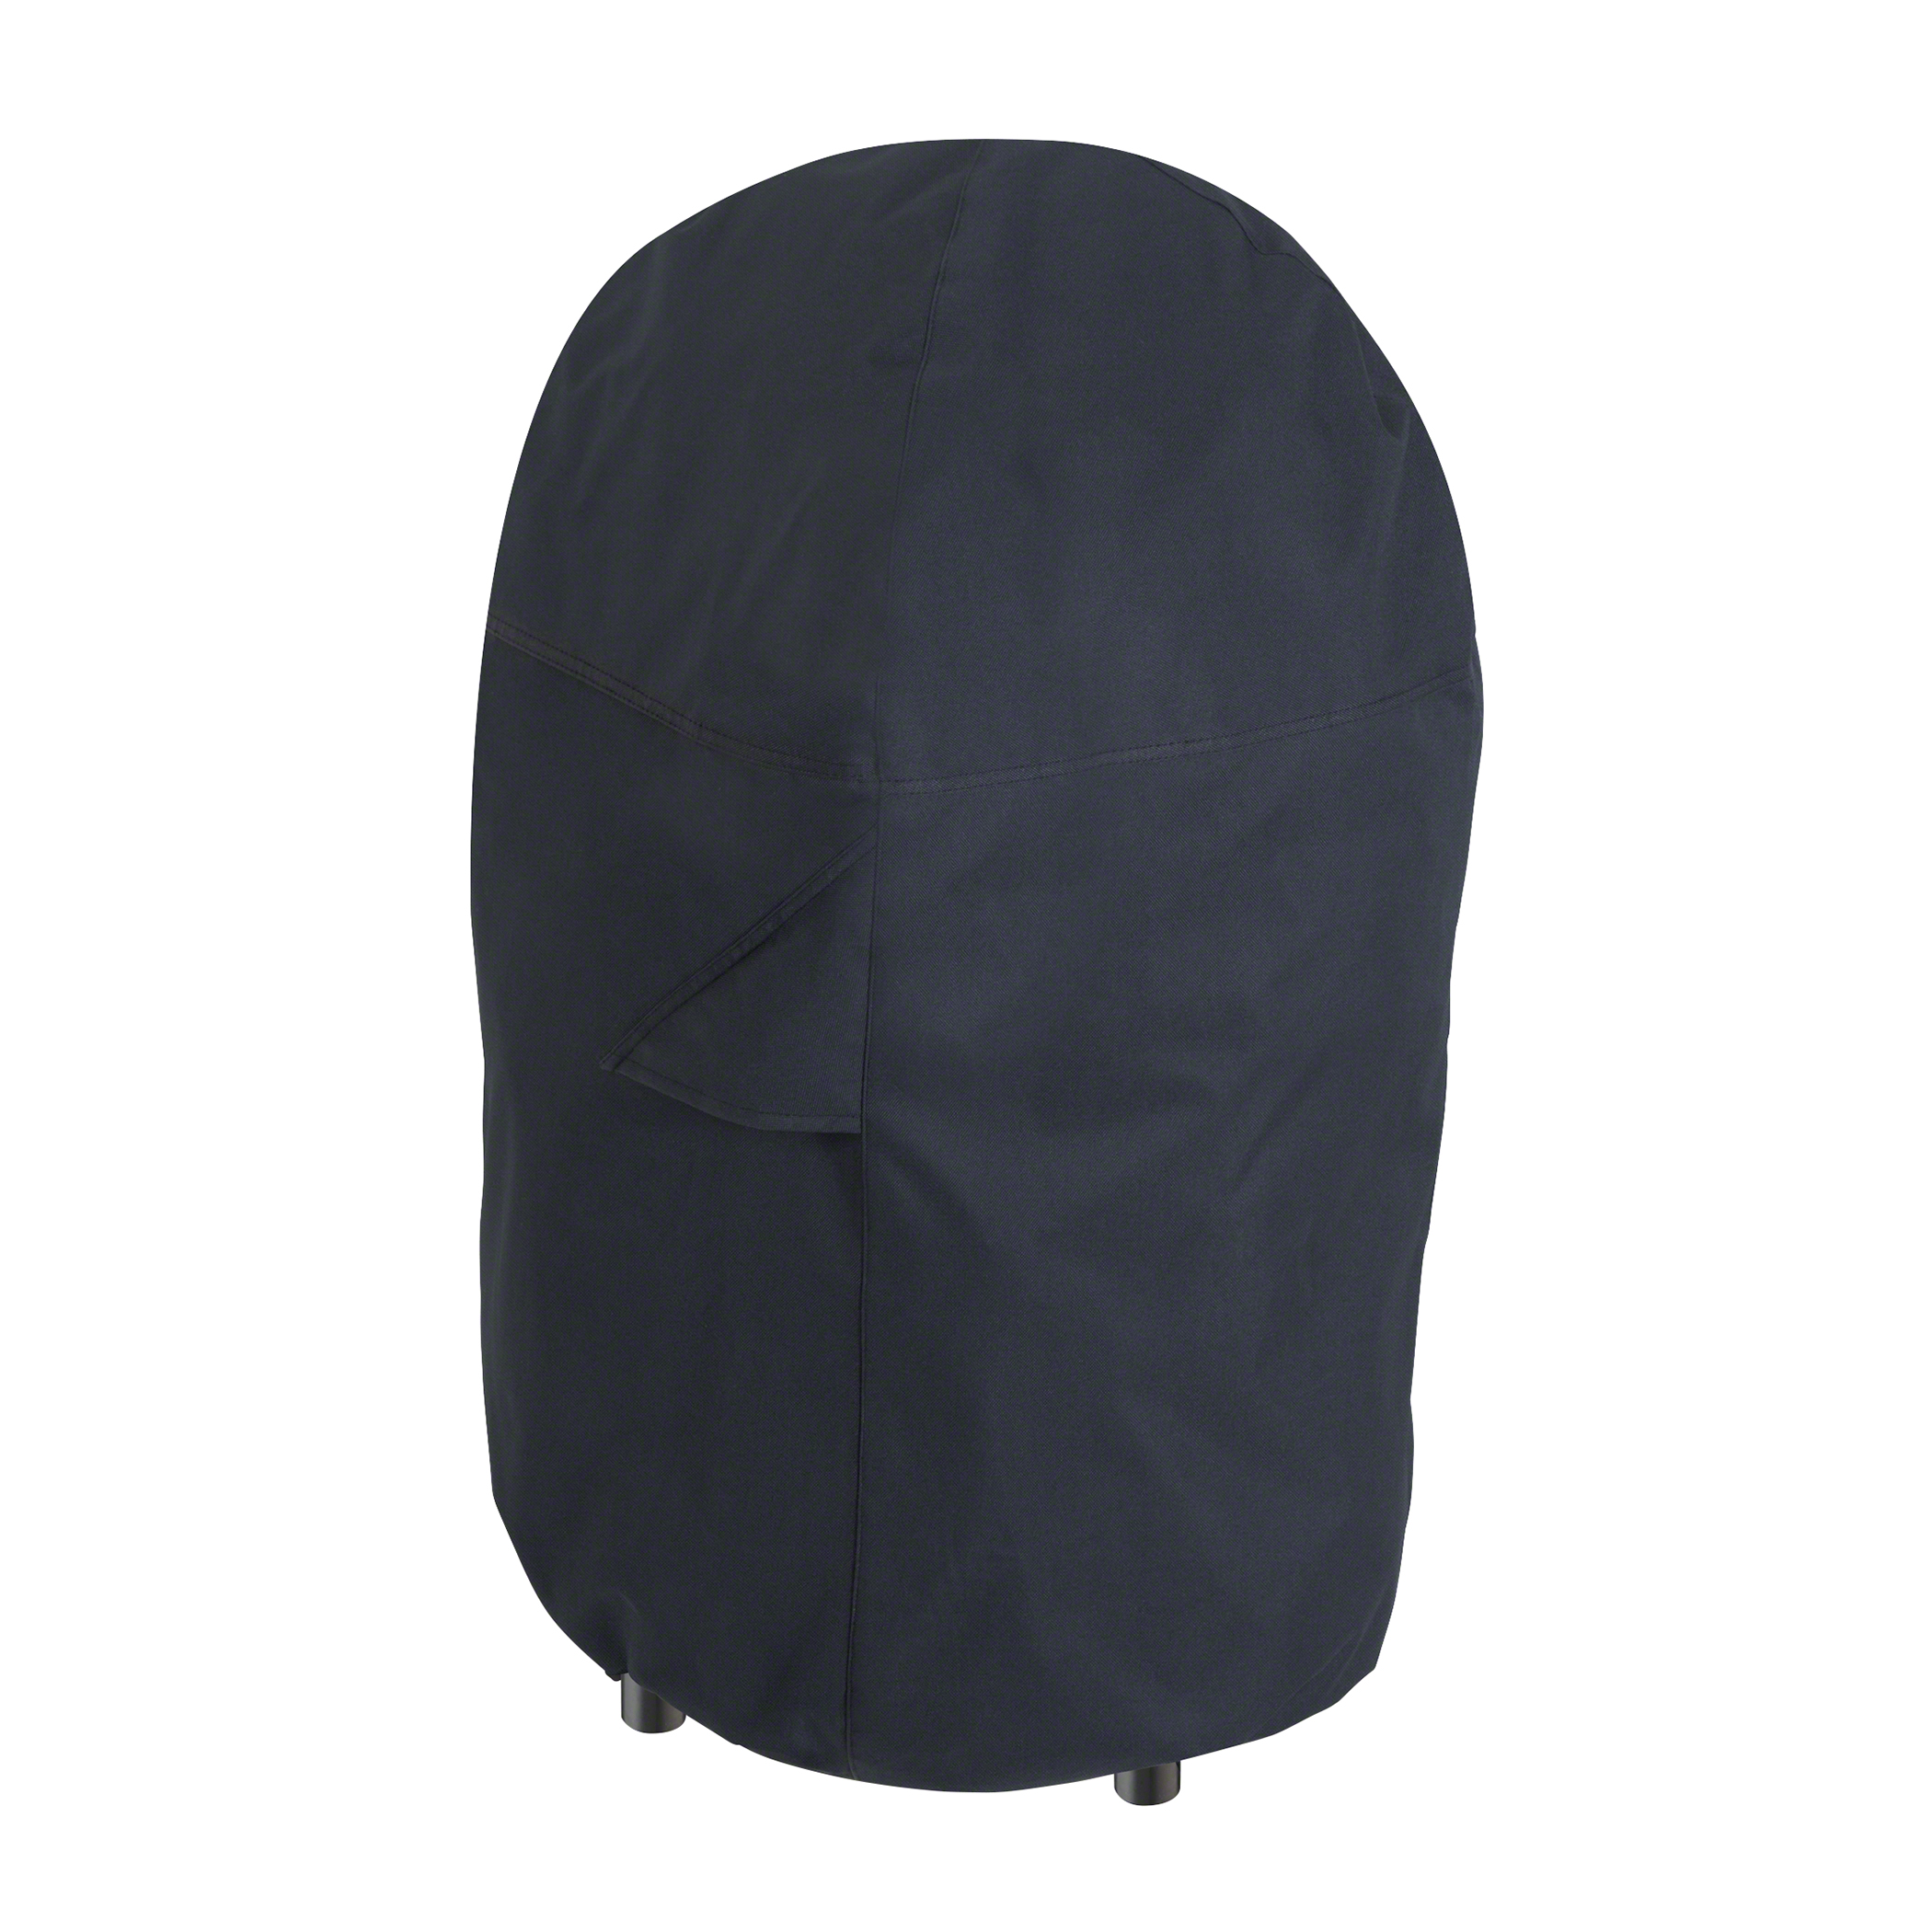 Classic Accessories Round Smoker Cover - Tough and Water Resistant Outdoor Cover, Medium